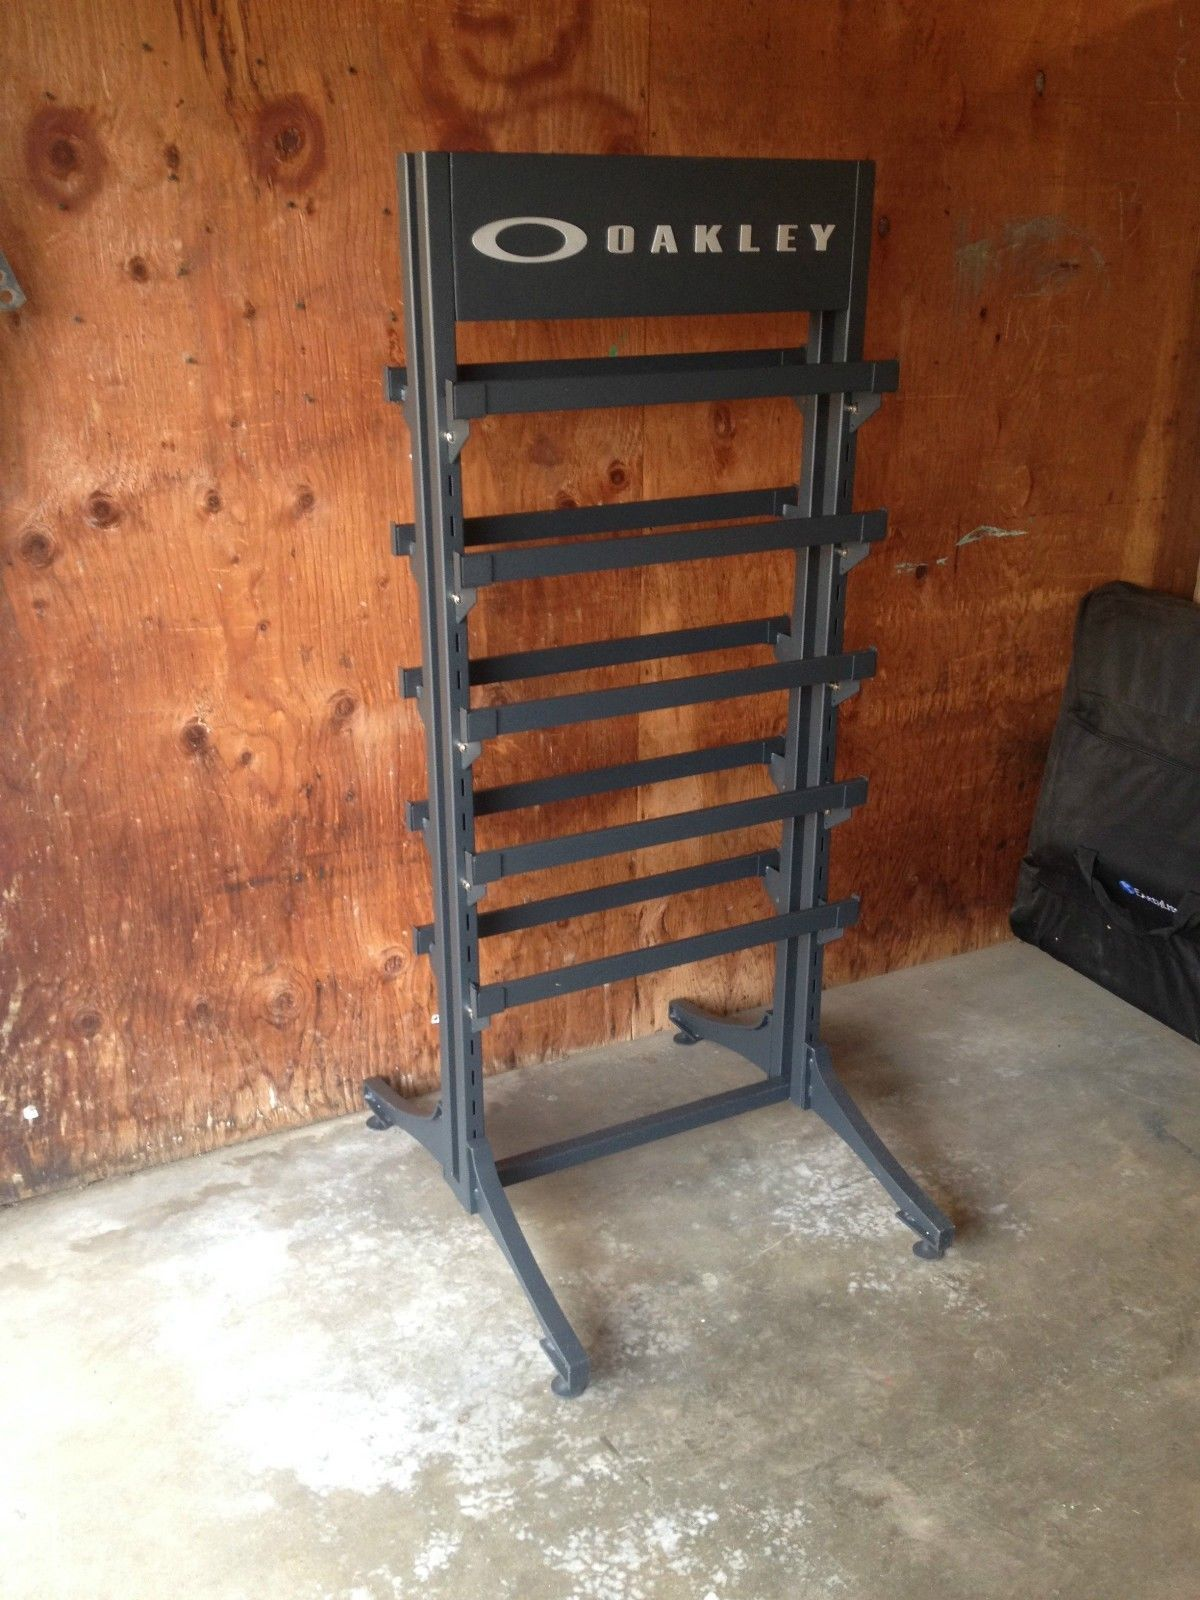 Oakley cooler and Accessory rack (SWFL) - O accy rack 1.jpg